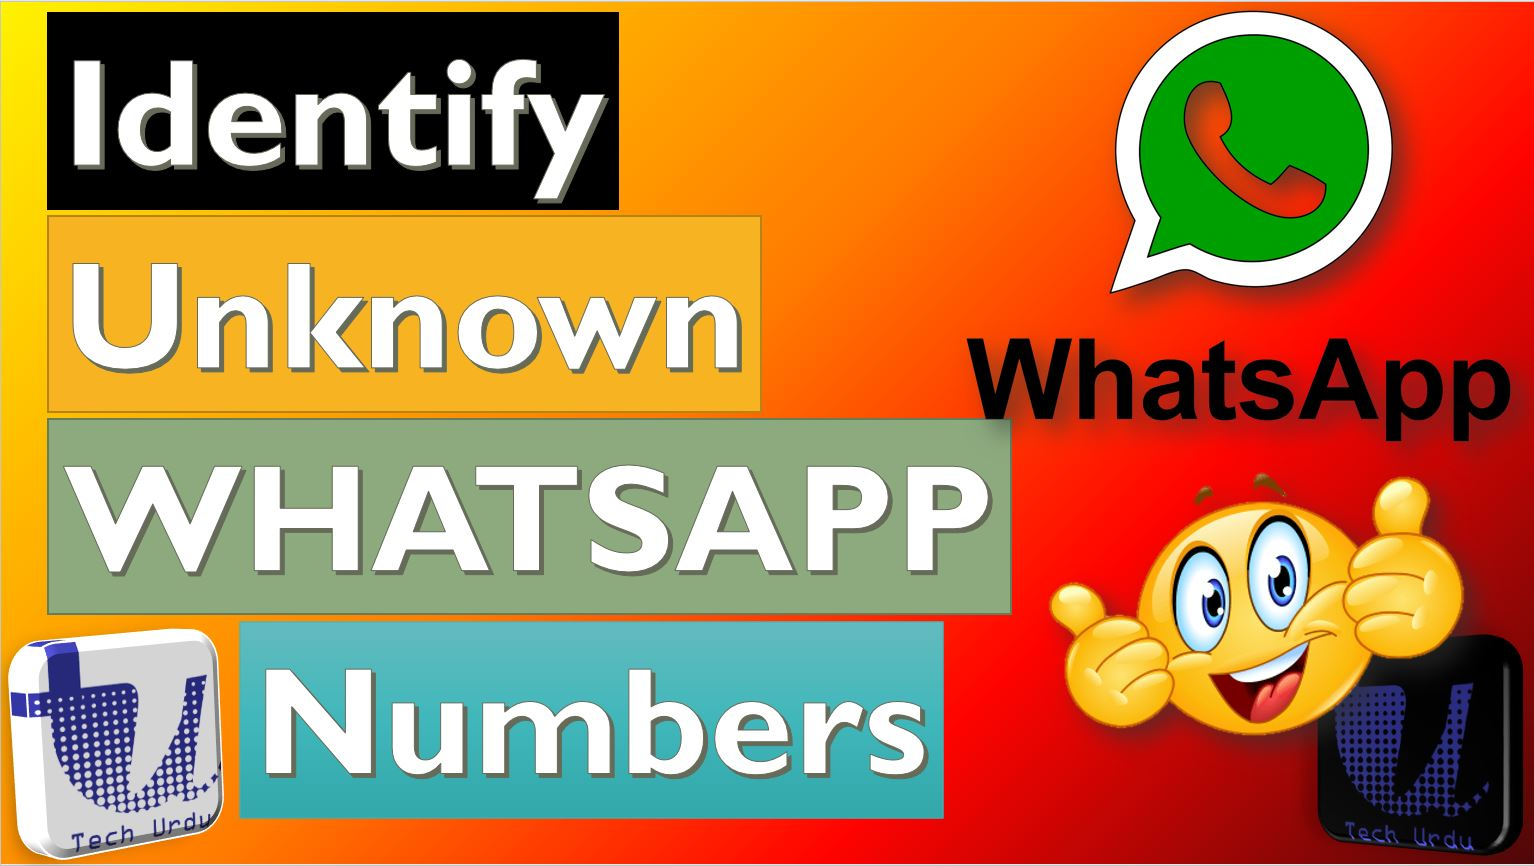 How to Identify Unknown Numbers on WhatsApp/Viber/Telegram/Line?